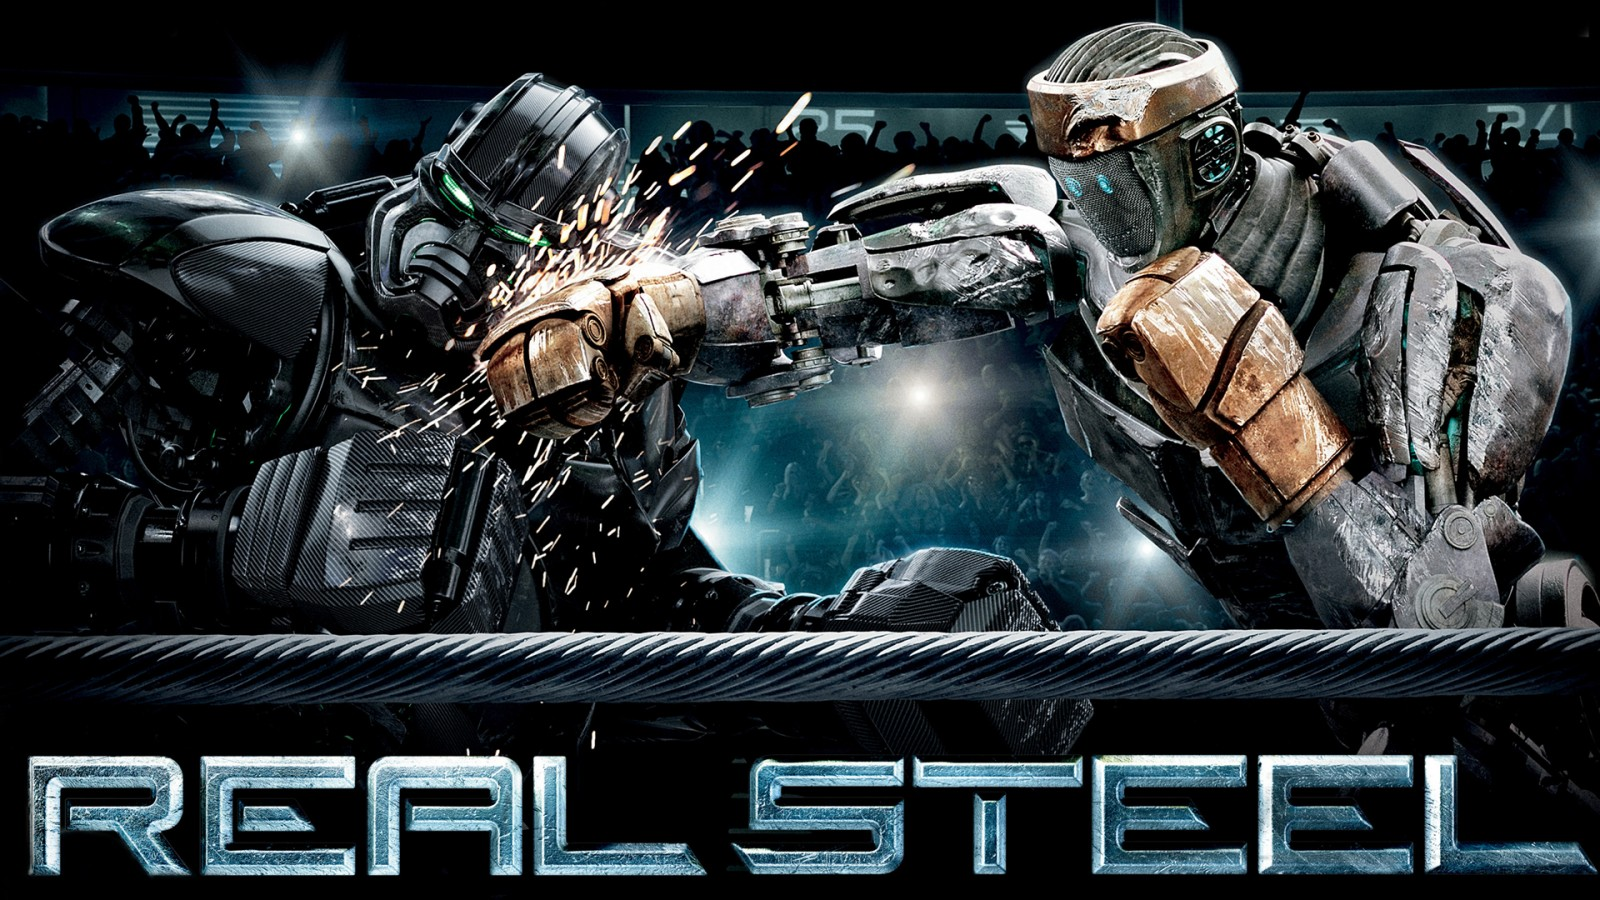 Apple Logo Iphone 5 Wallpaper Real Steel Battle Wallpapers Hd Wallpapers Id 10393